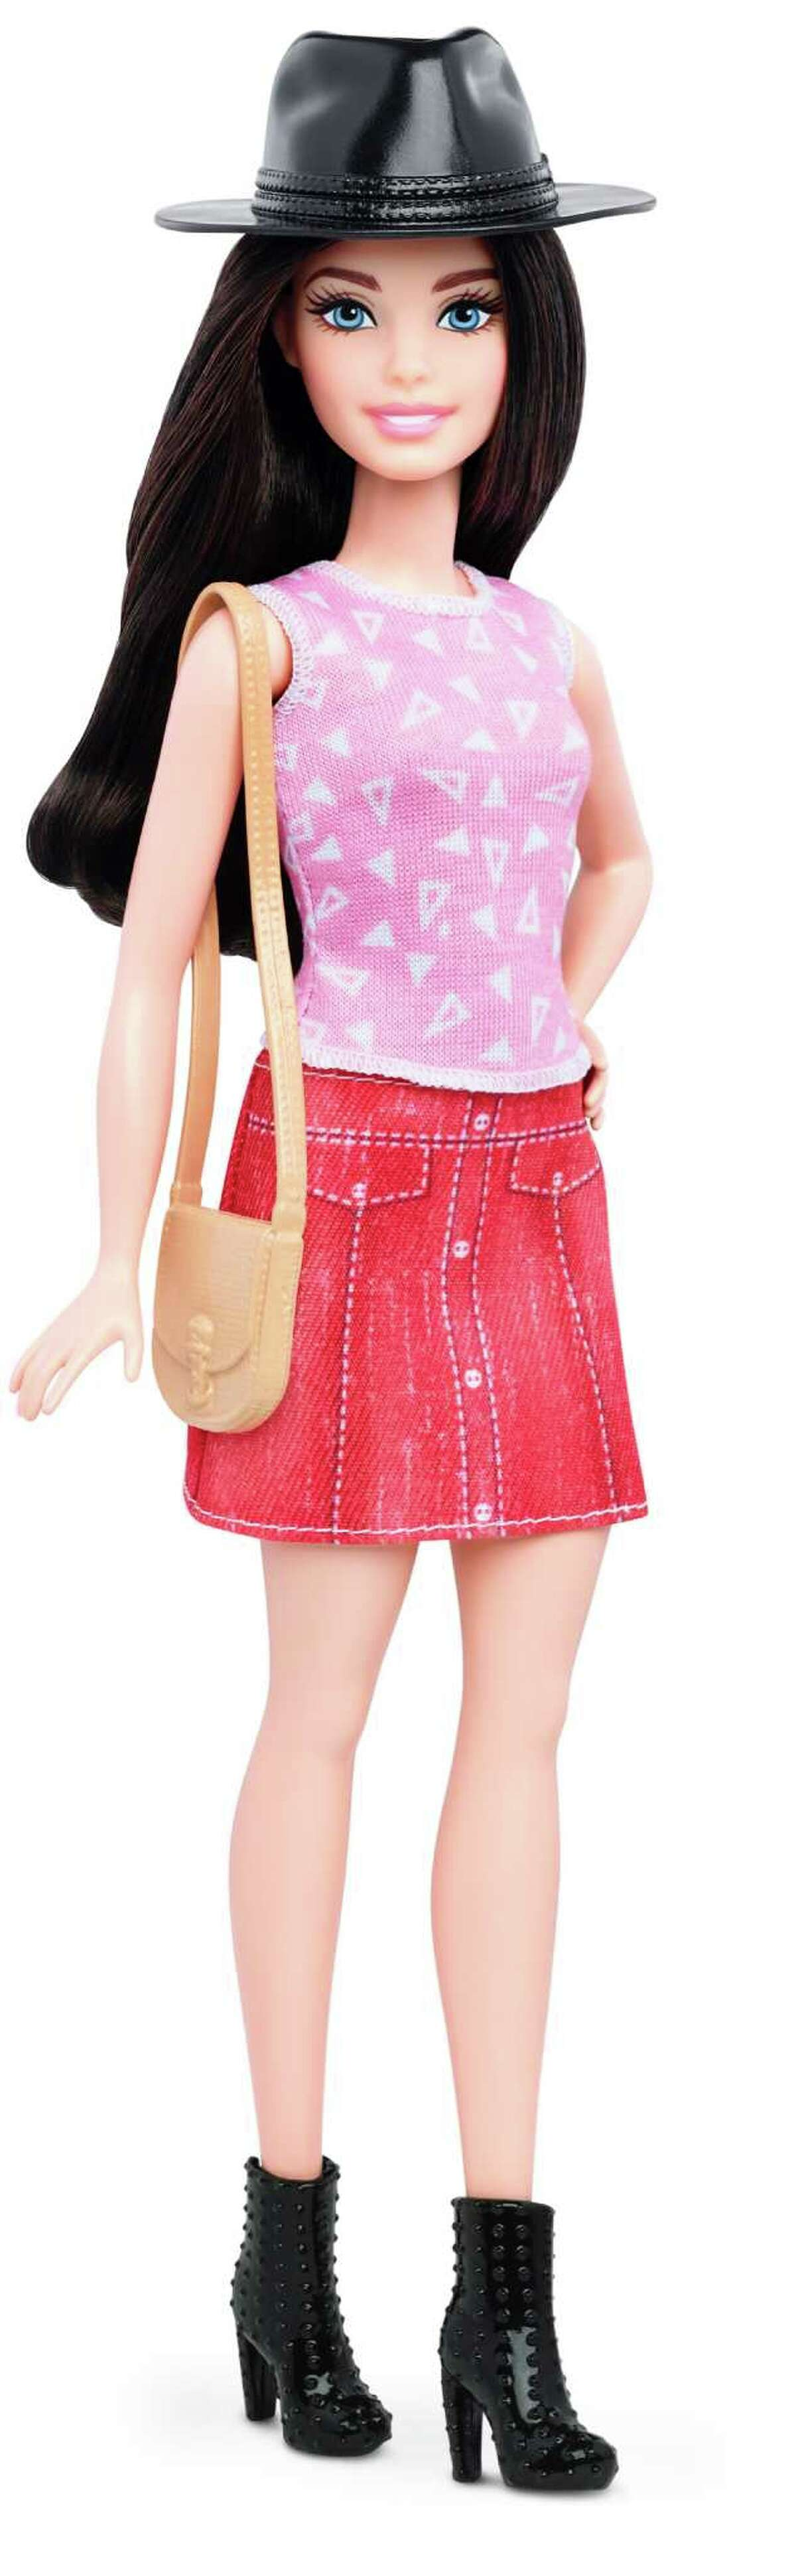 Petite This photo provided by Mattel shows a new, petite Barbie Fashionista, introduced in January 2016.